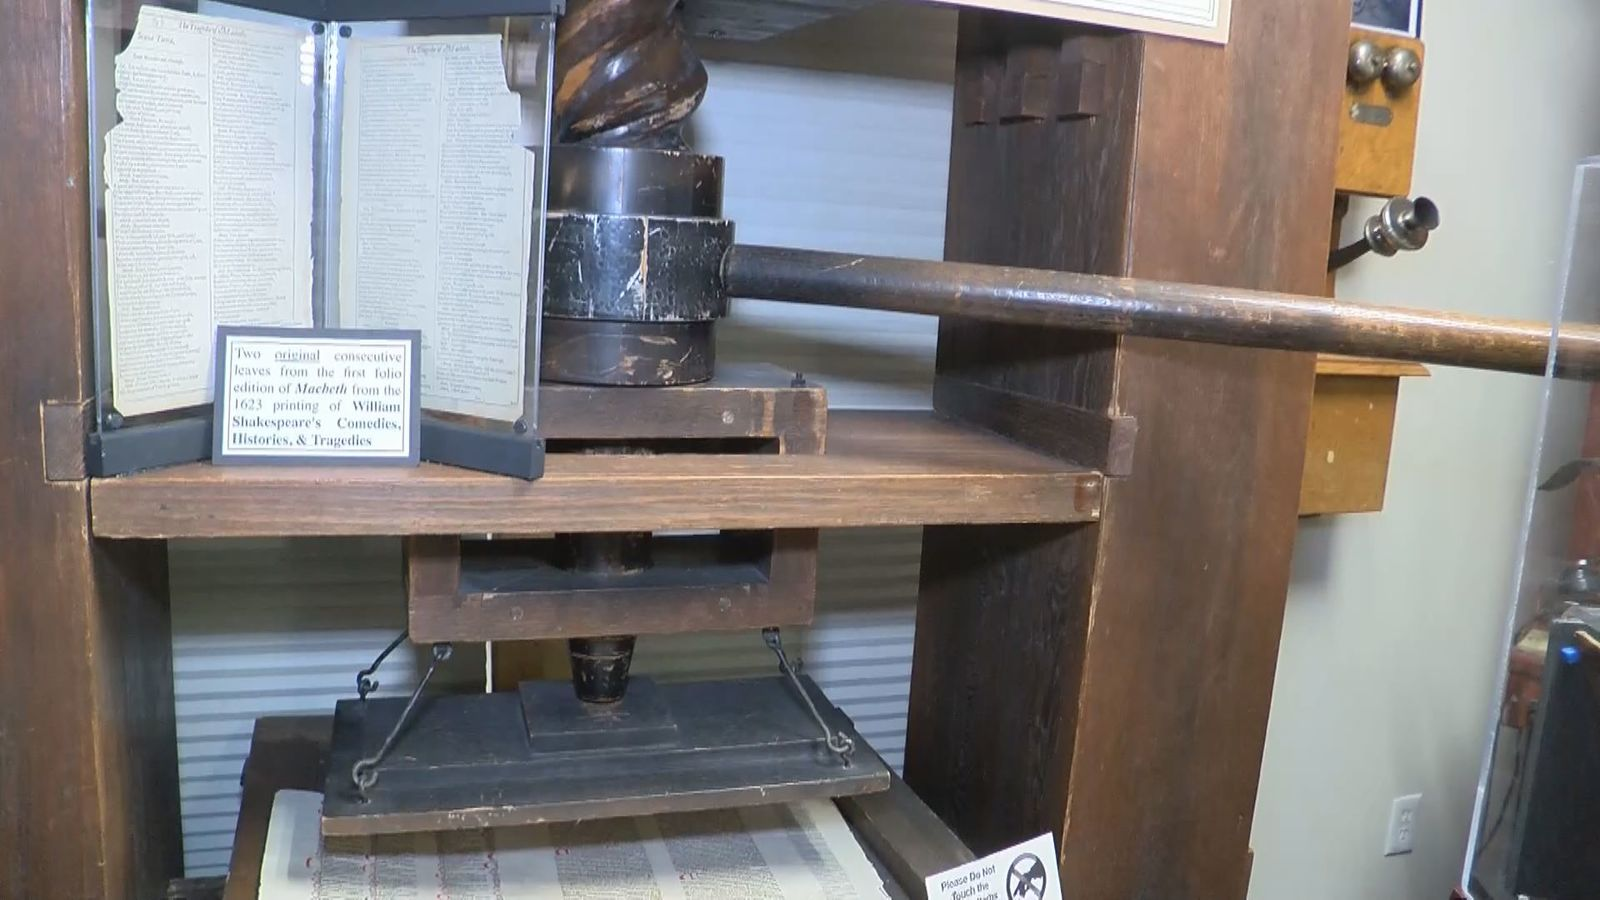 A reproduction of the Gutenberg Printing Press.